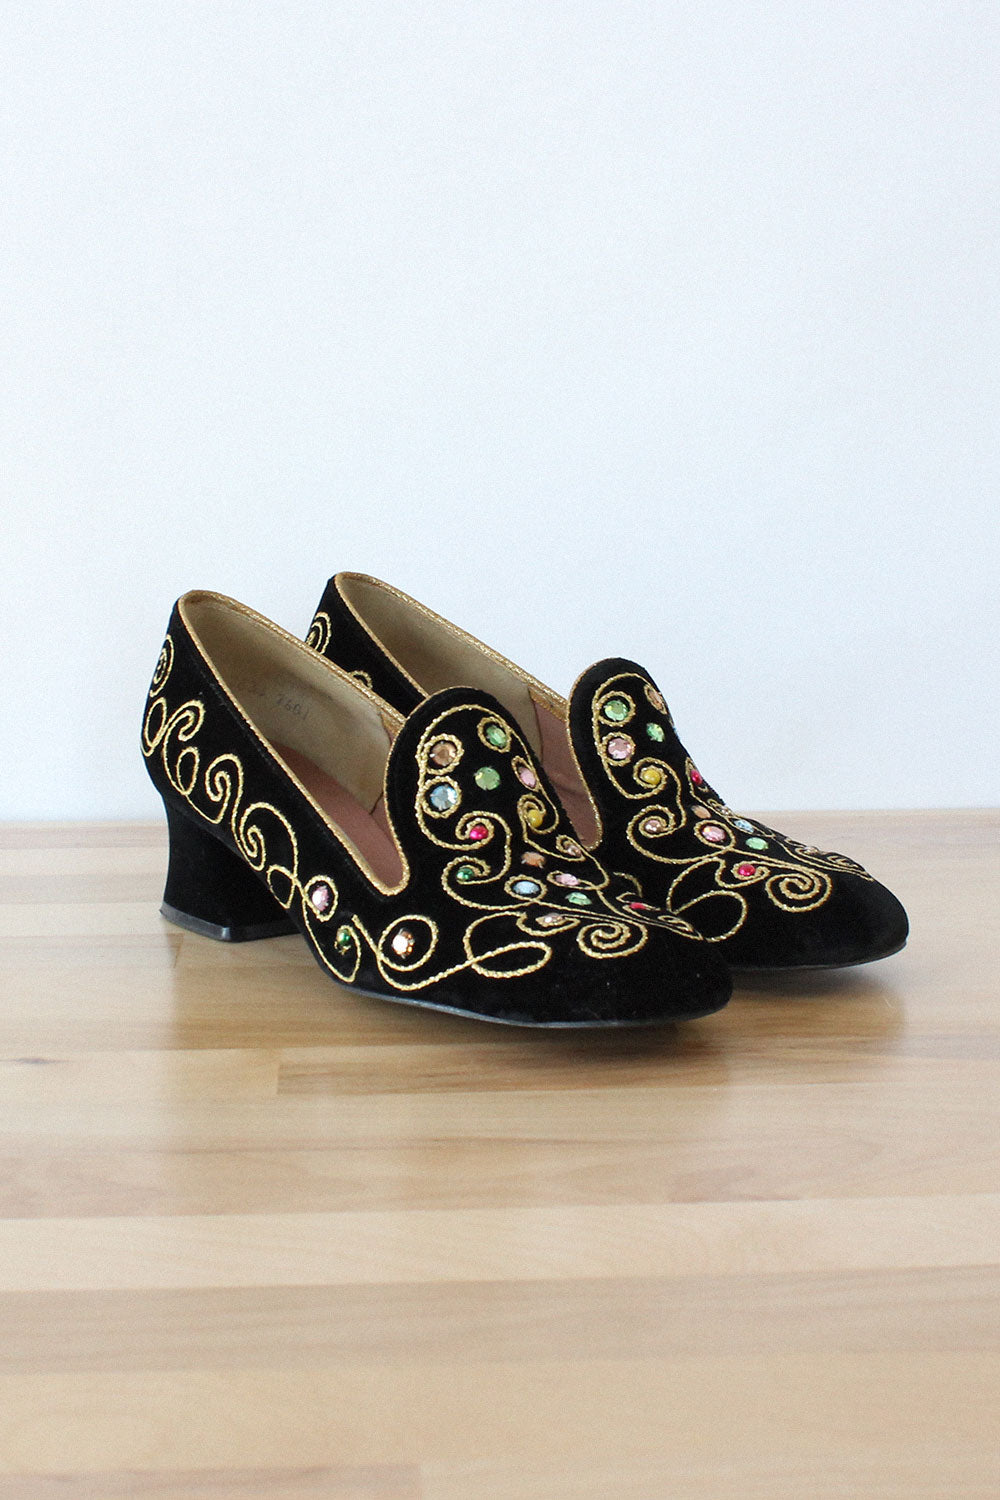 5c469a2235bb Embellished Heeled Loafers 6 – OMNIA